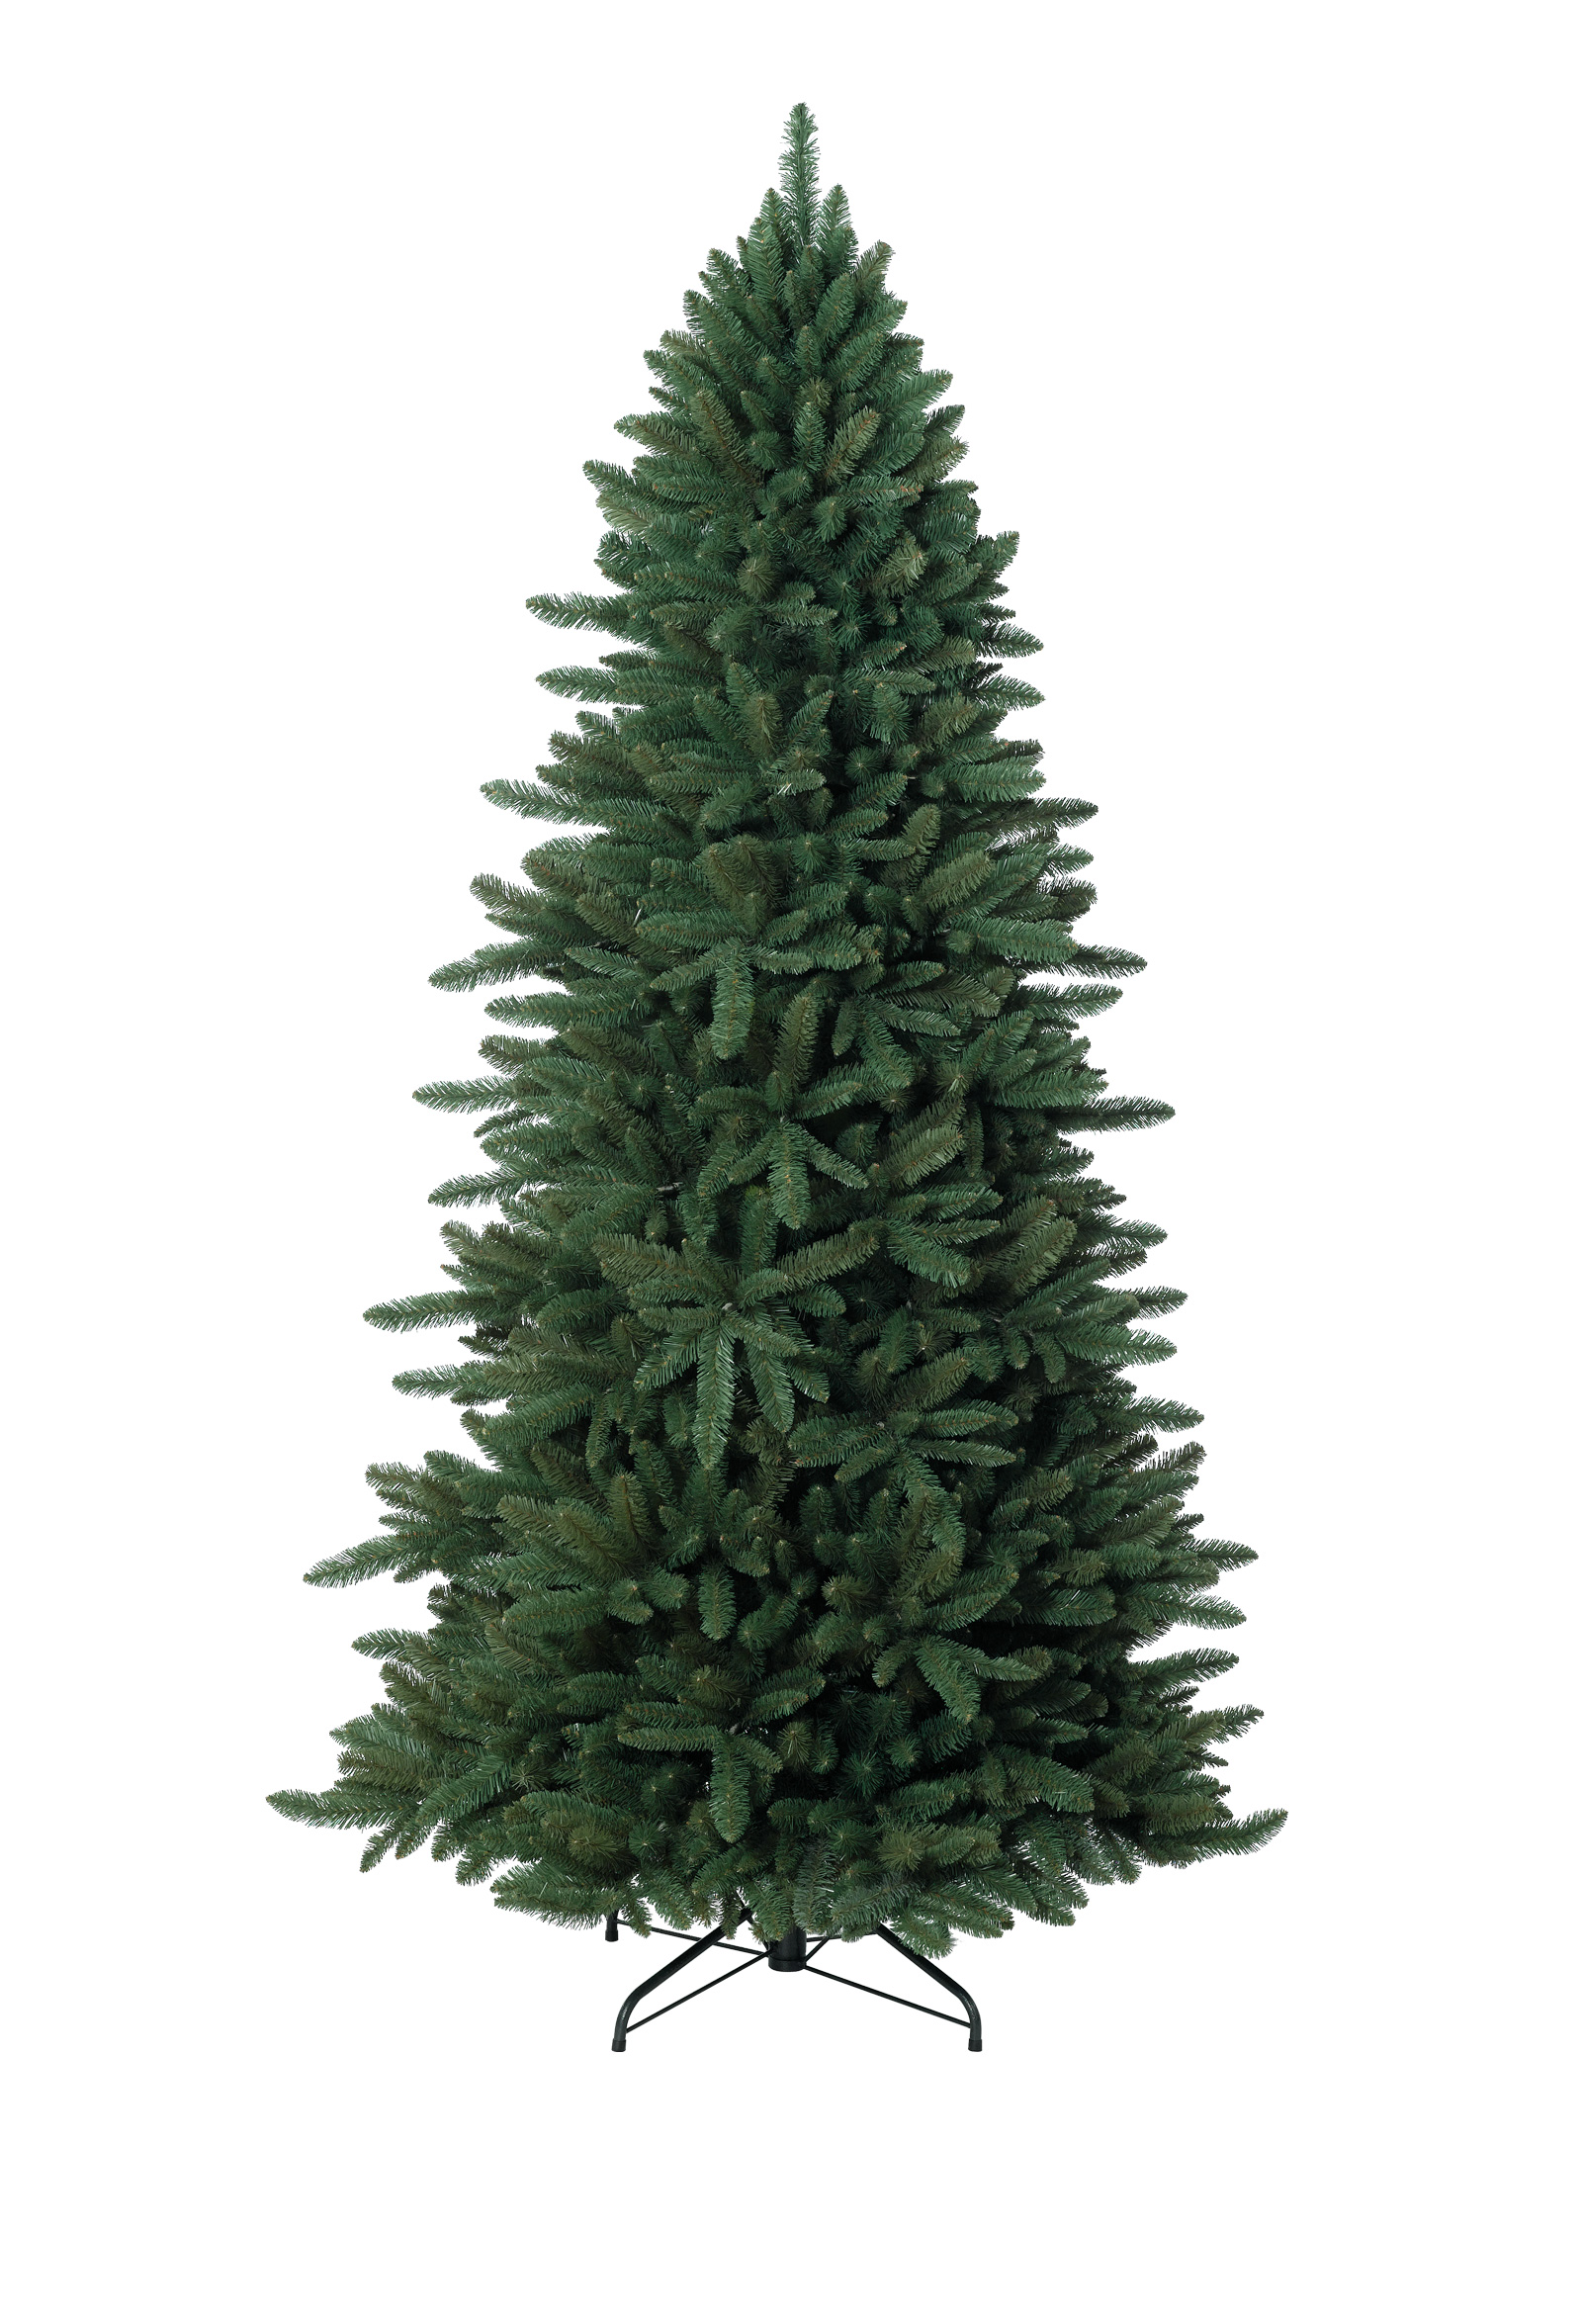 6 ft Sierra Slim Unlit Christmas Tree | Christmas Tree Market